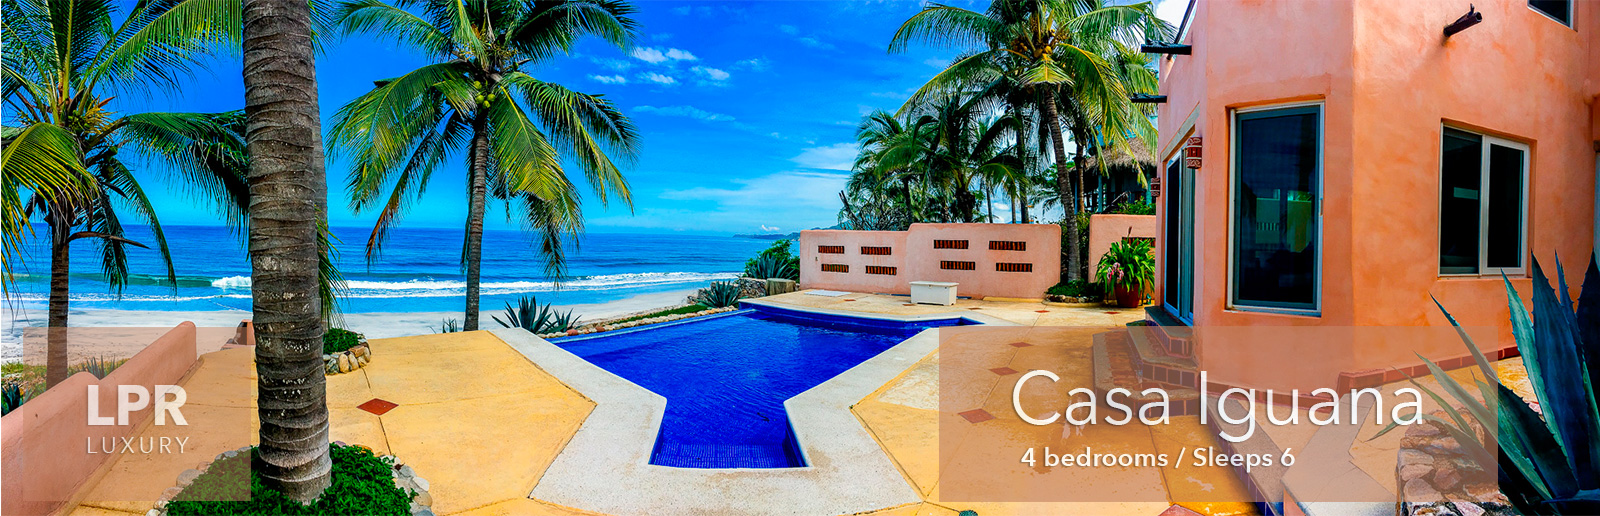 Casa Iguana - Higuera Blanca - Litibu- Punta de Mita beach front real estates for sale